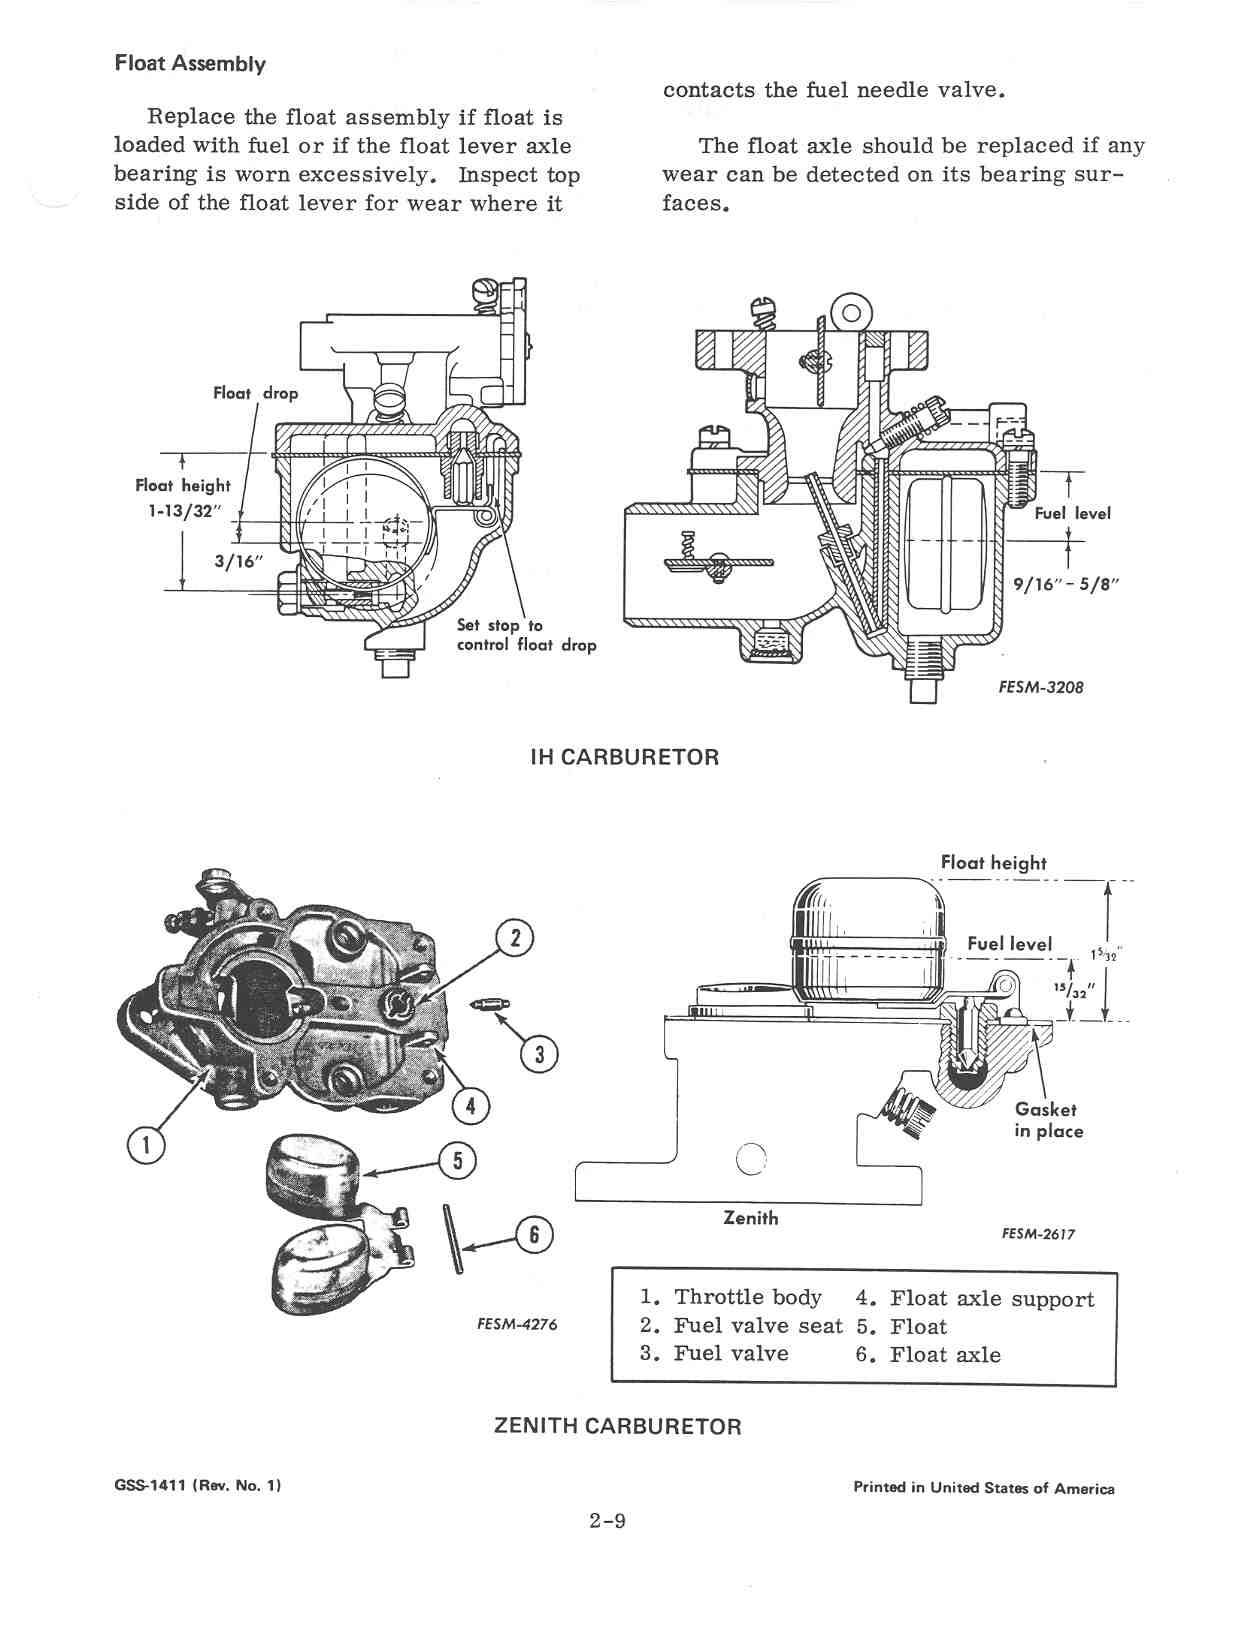 hight resolution of farmall 400 carburetor diagram simple wiring schema mccormick farmall 400 farmall 400 transmission diagram